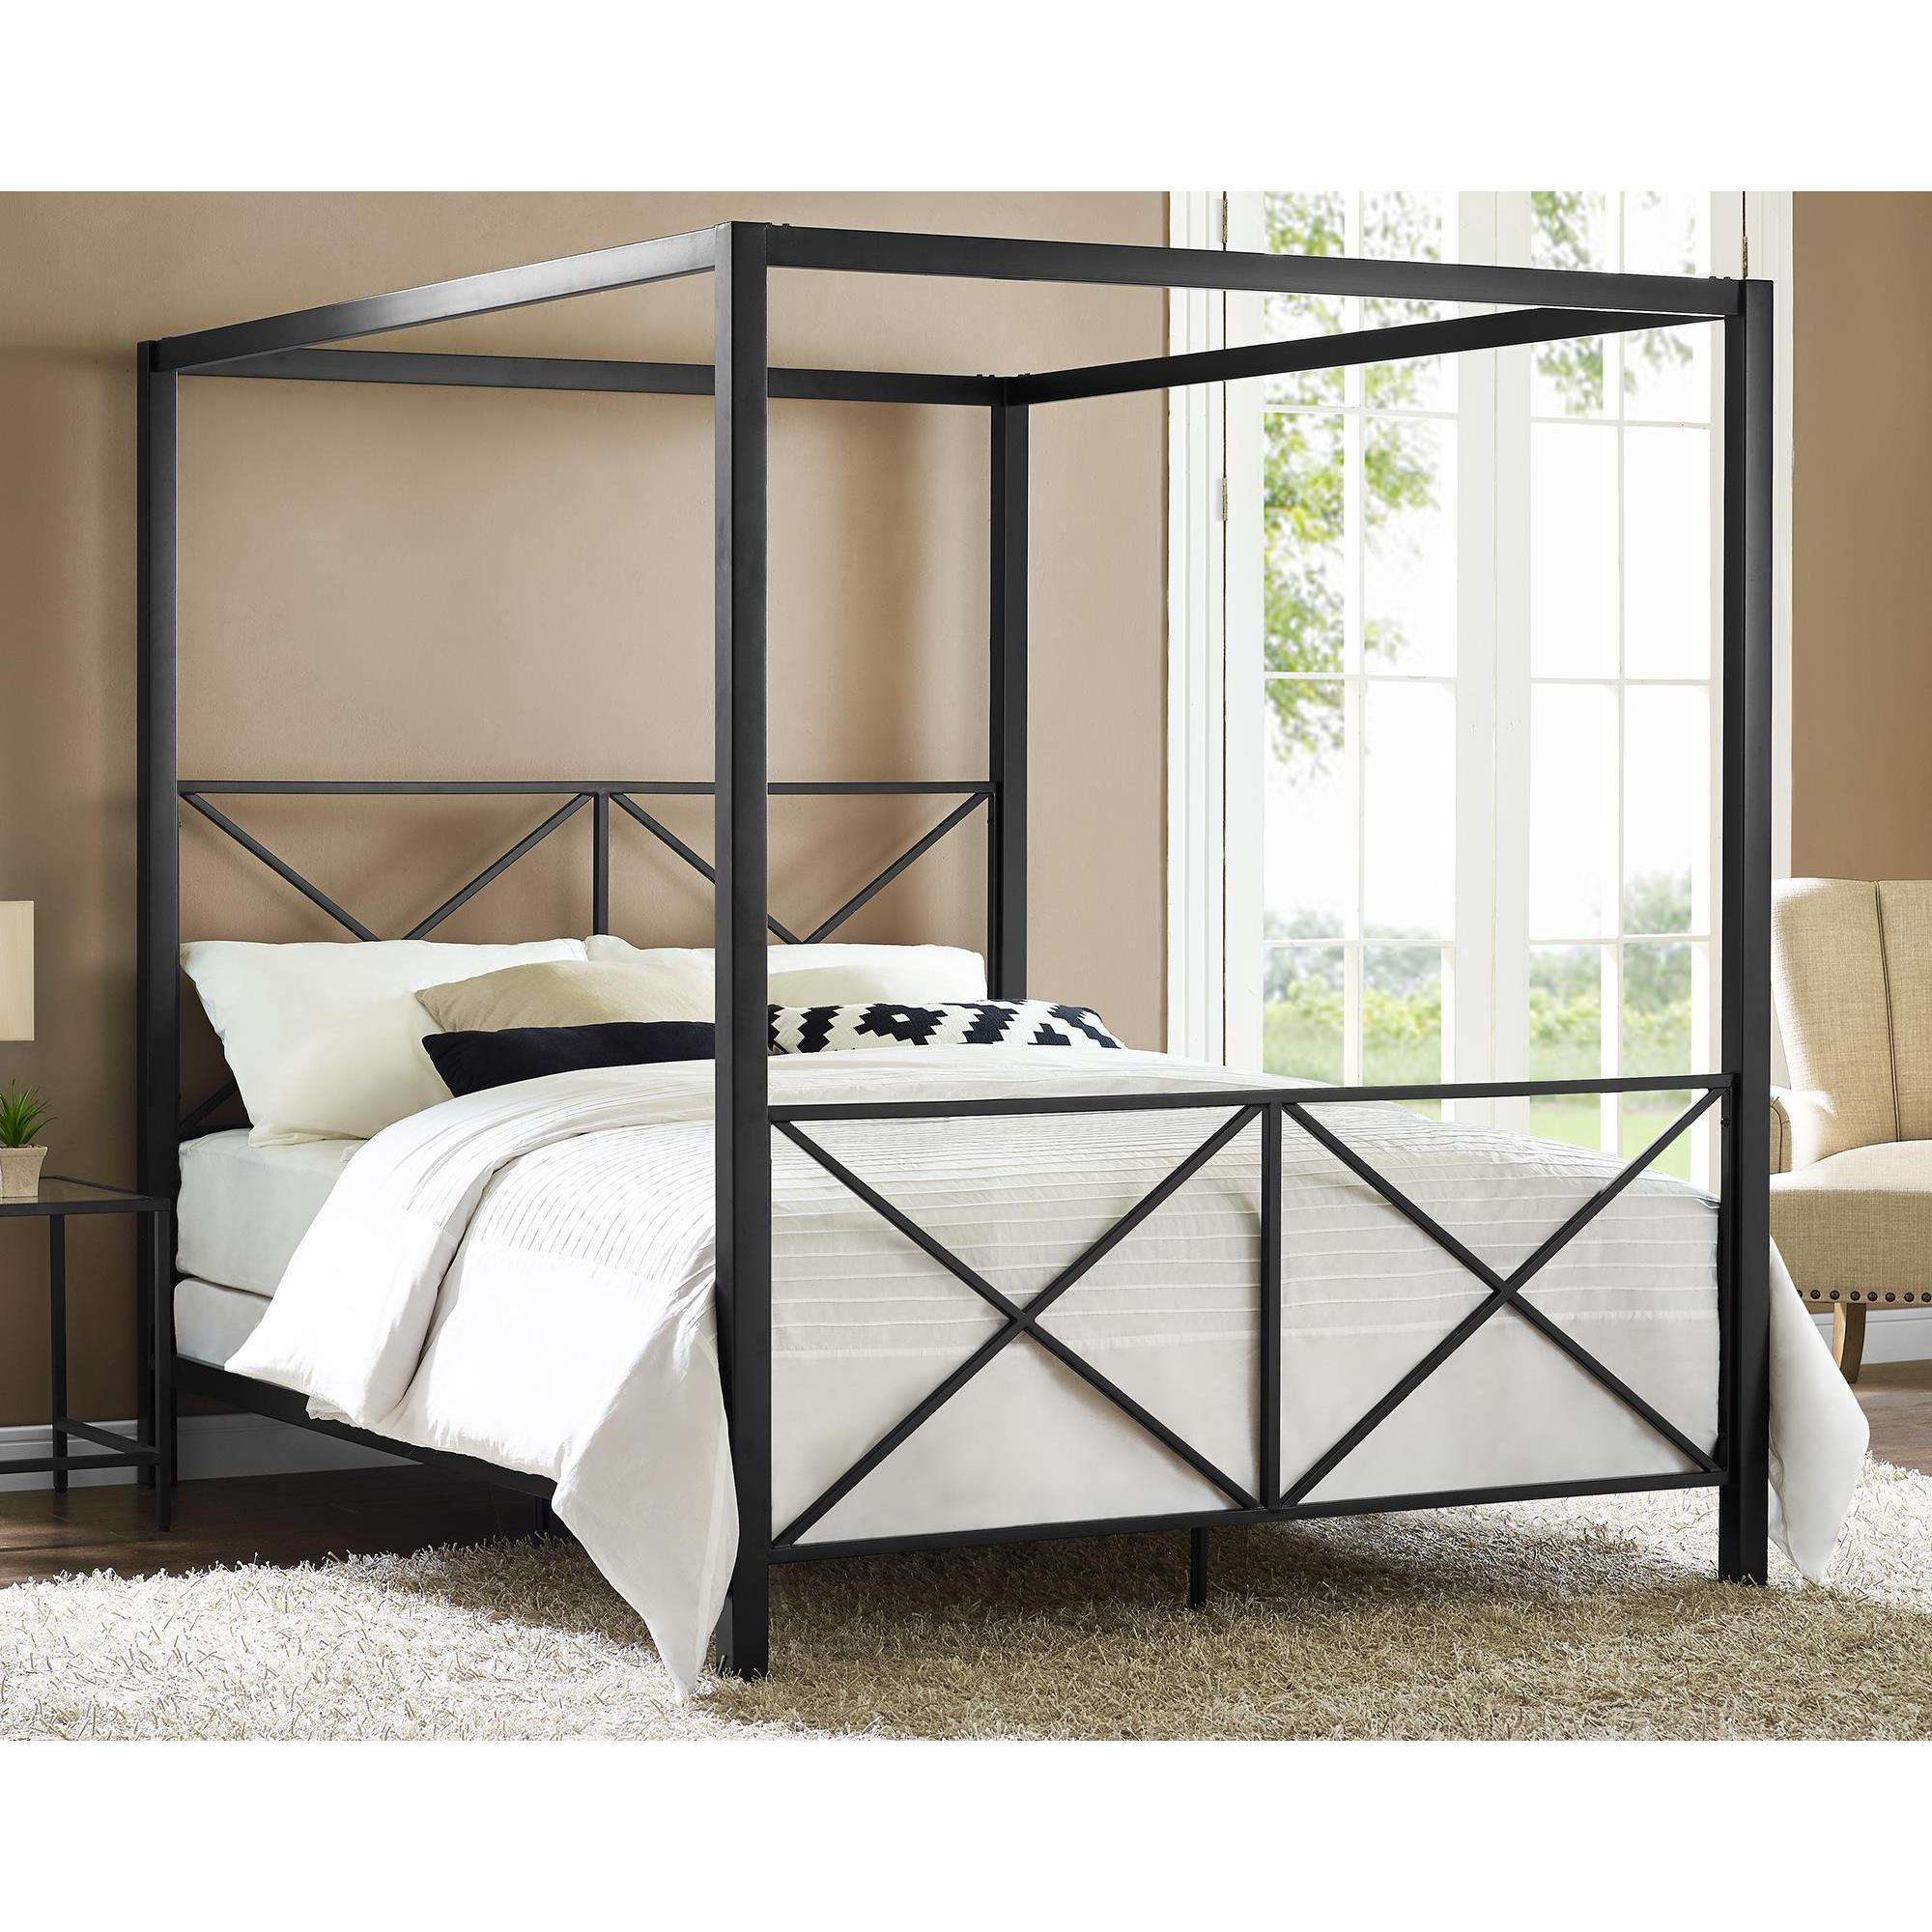 Exceptionnel DHP Rosedale Black Metal Canopy Queen Bed